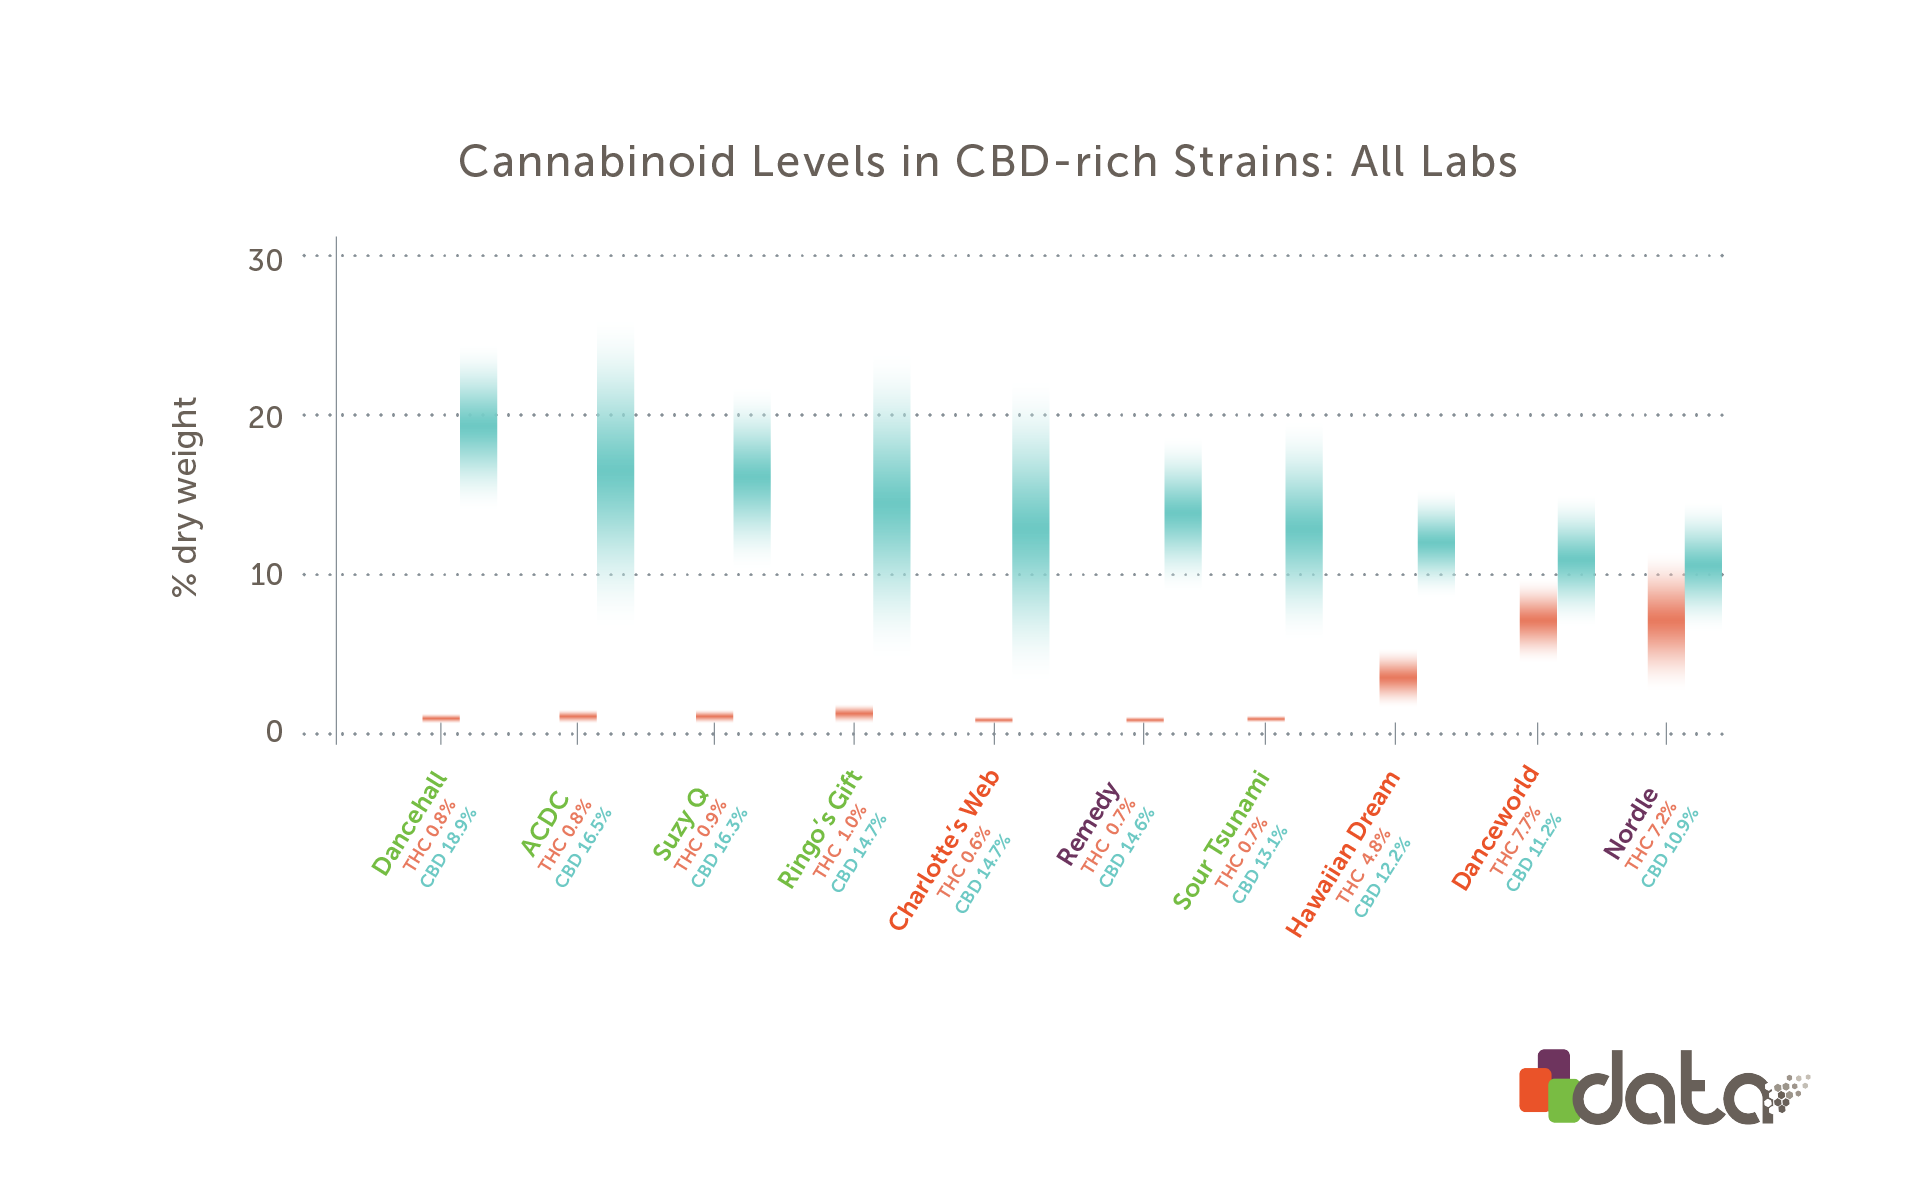 Graph: Comparison of high cbd weed strains from all labs